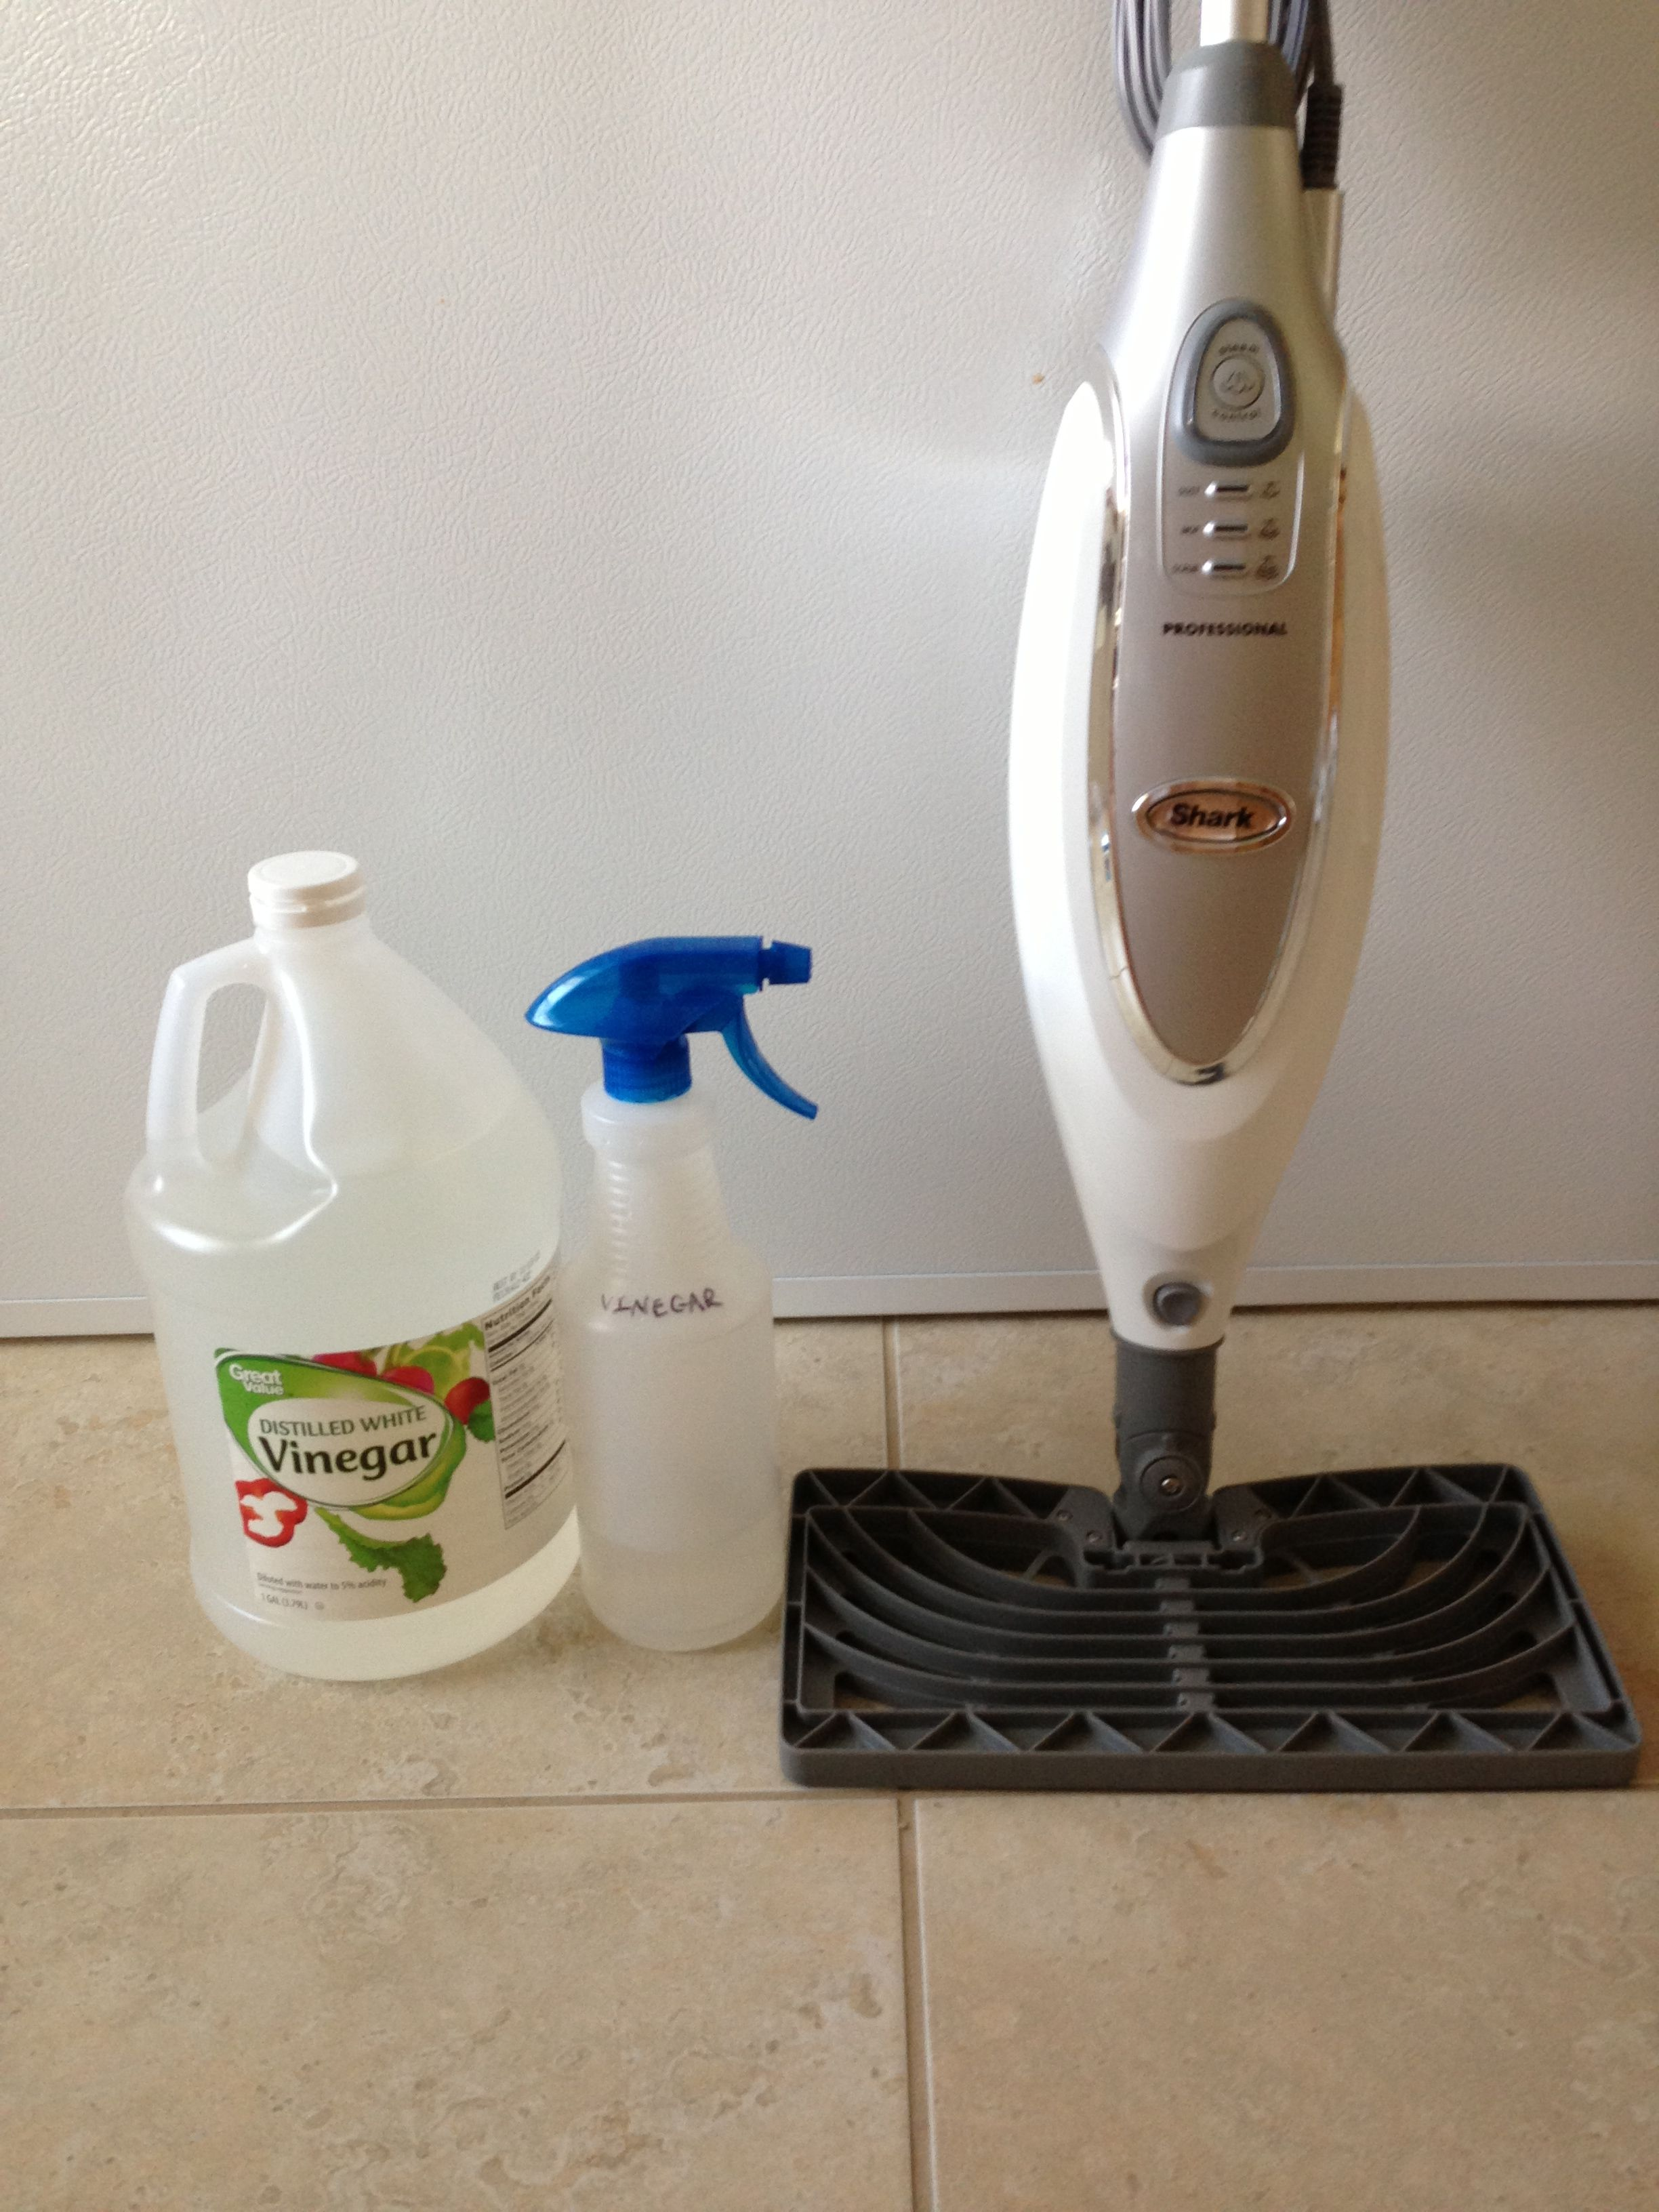 Use Spray Bottle To Mist Vinegar On Your Tile Then Run